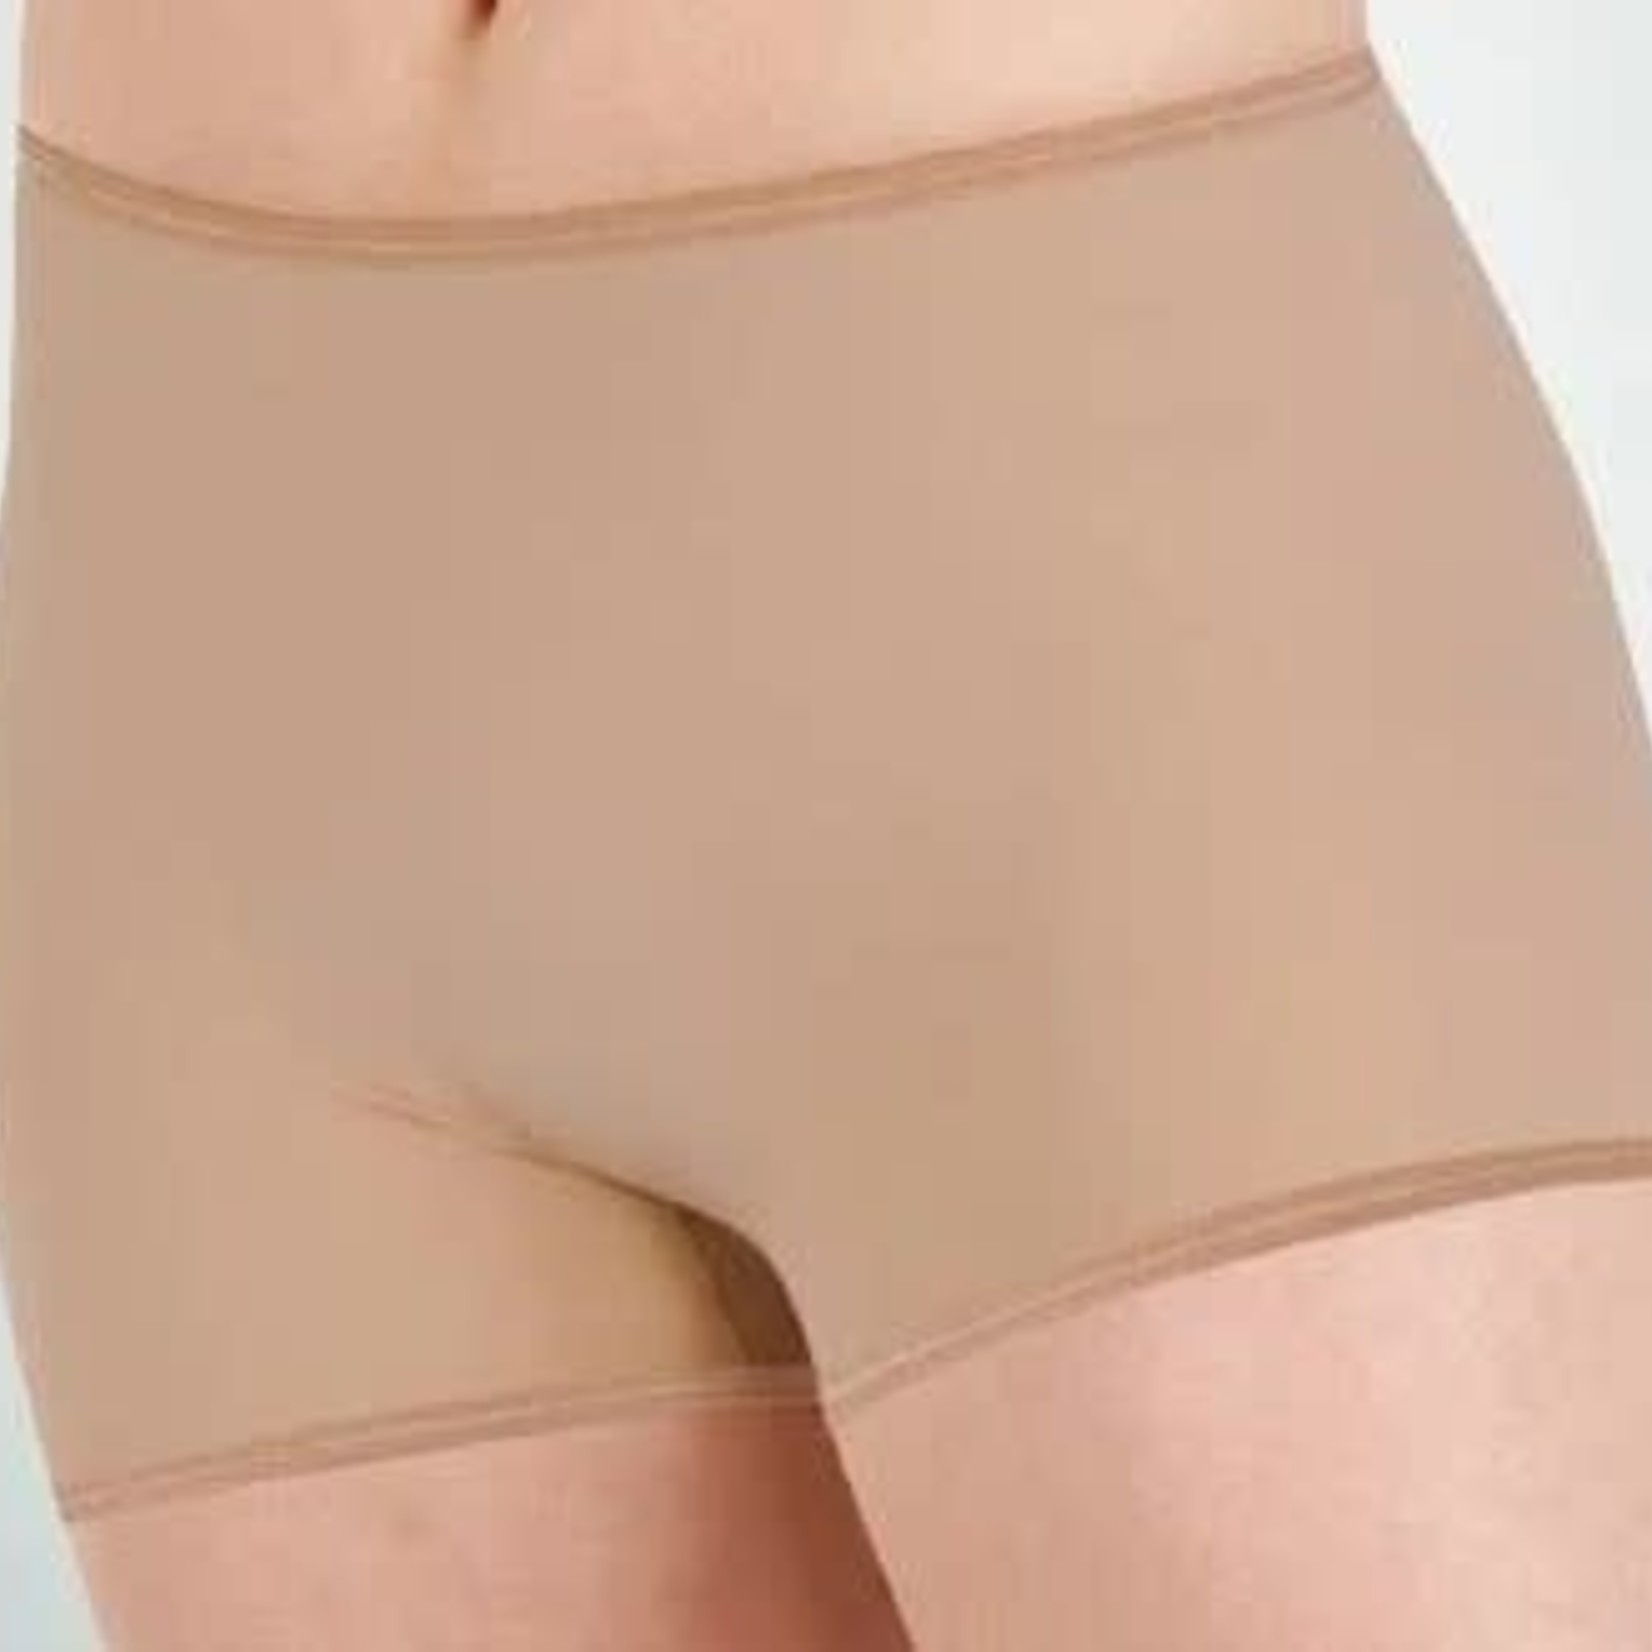 Body Wrappers Body Wrappers 289 Seamless Undergarment Shorts